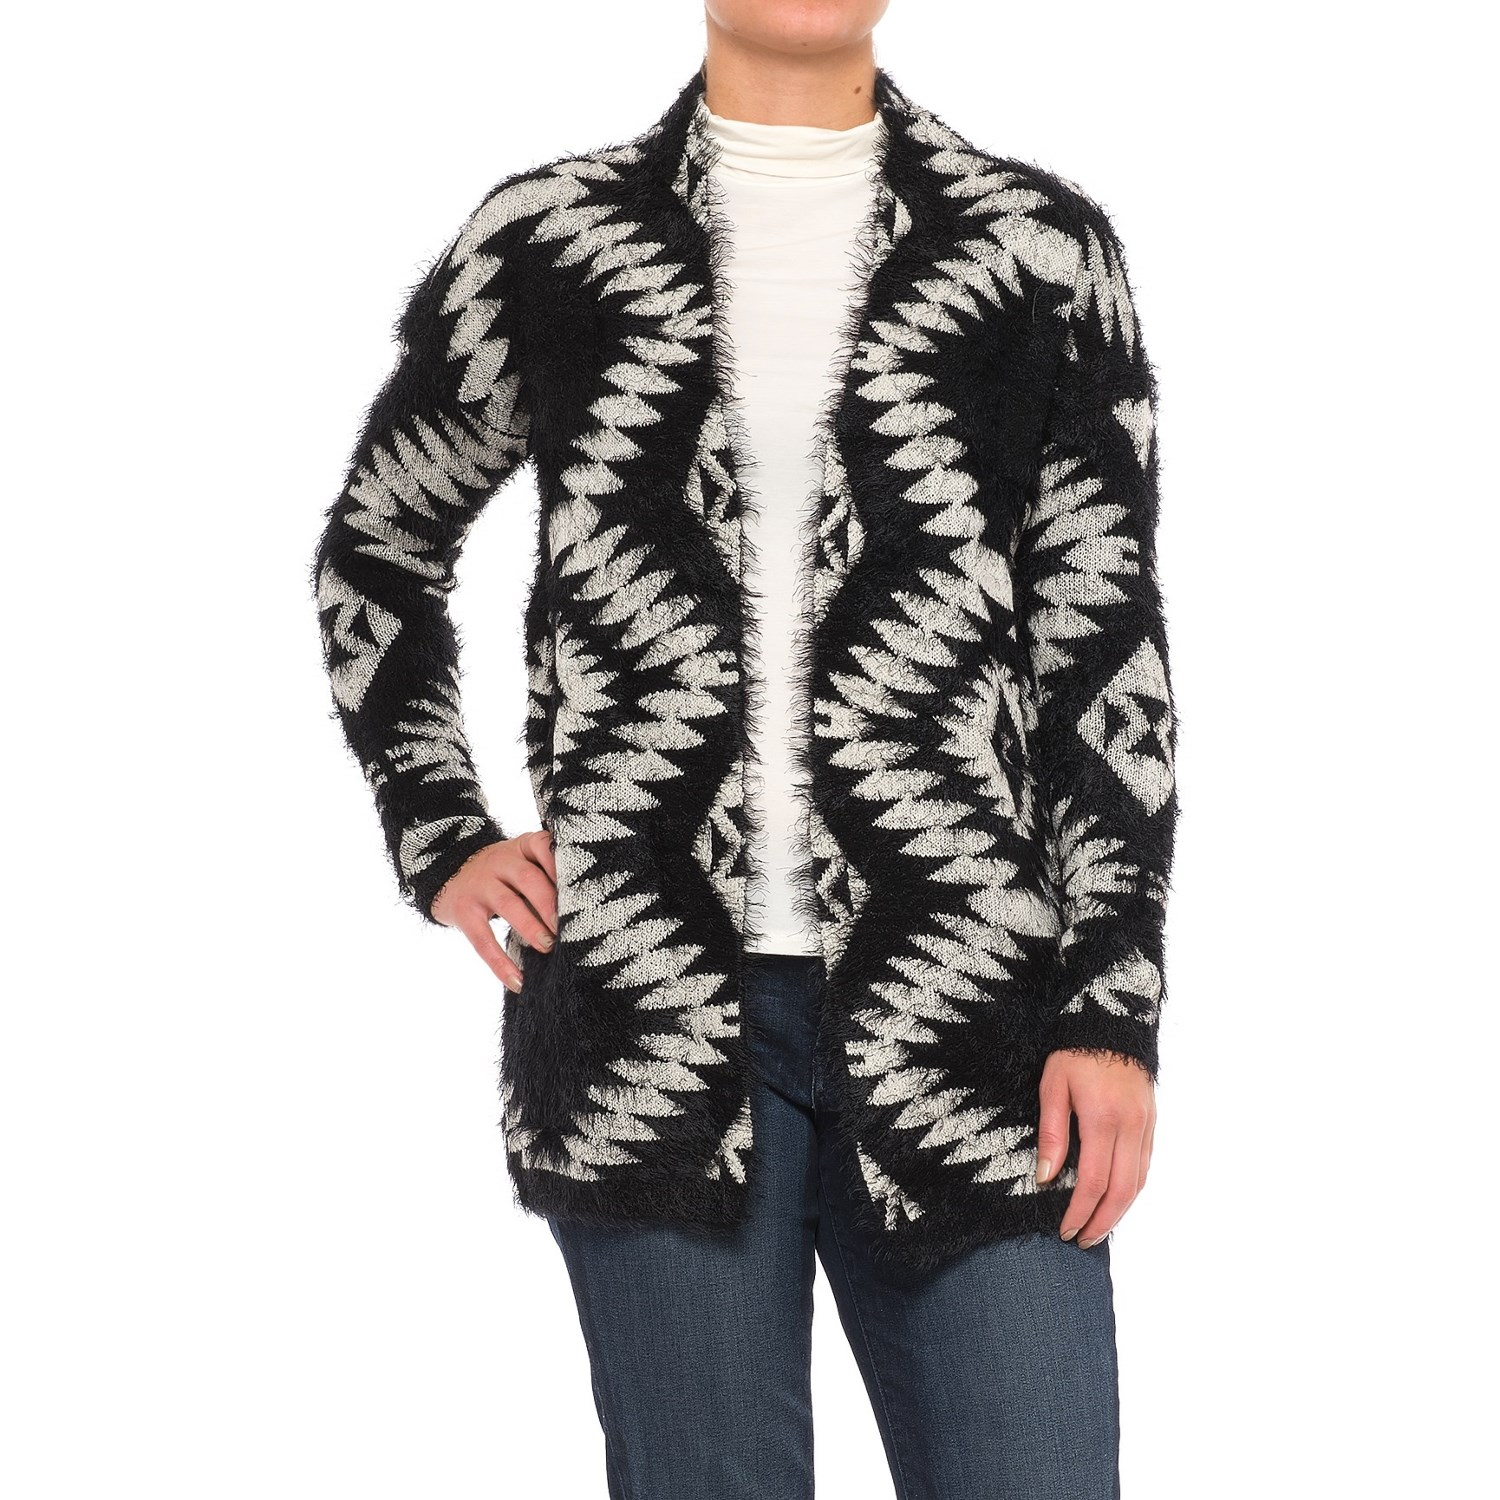 Chelsea & Theodore Open Front Cardigan Sweater (For Women) - Save 67%